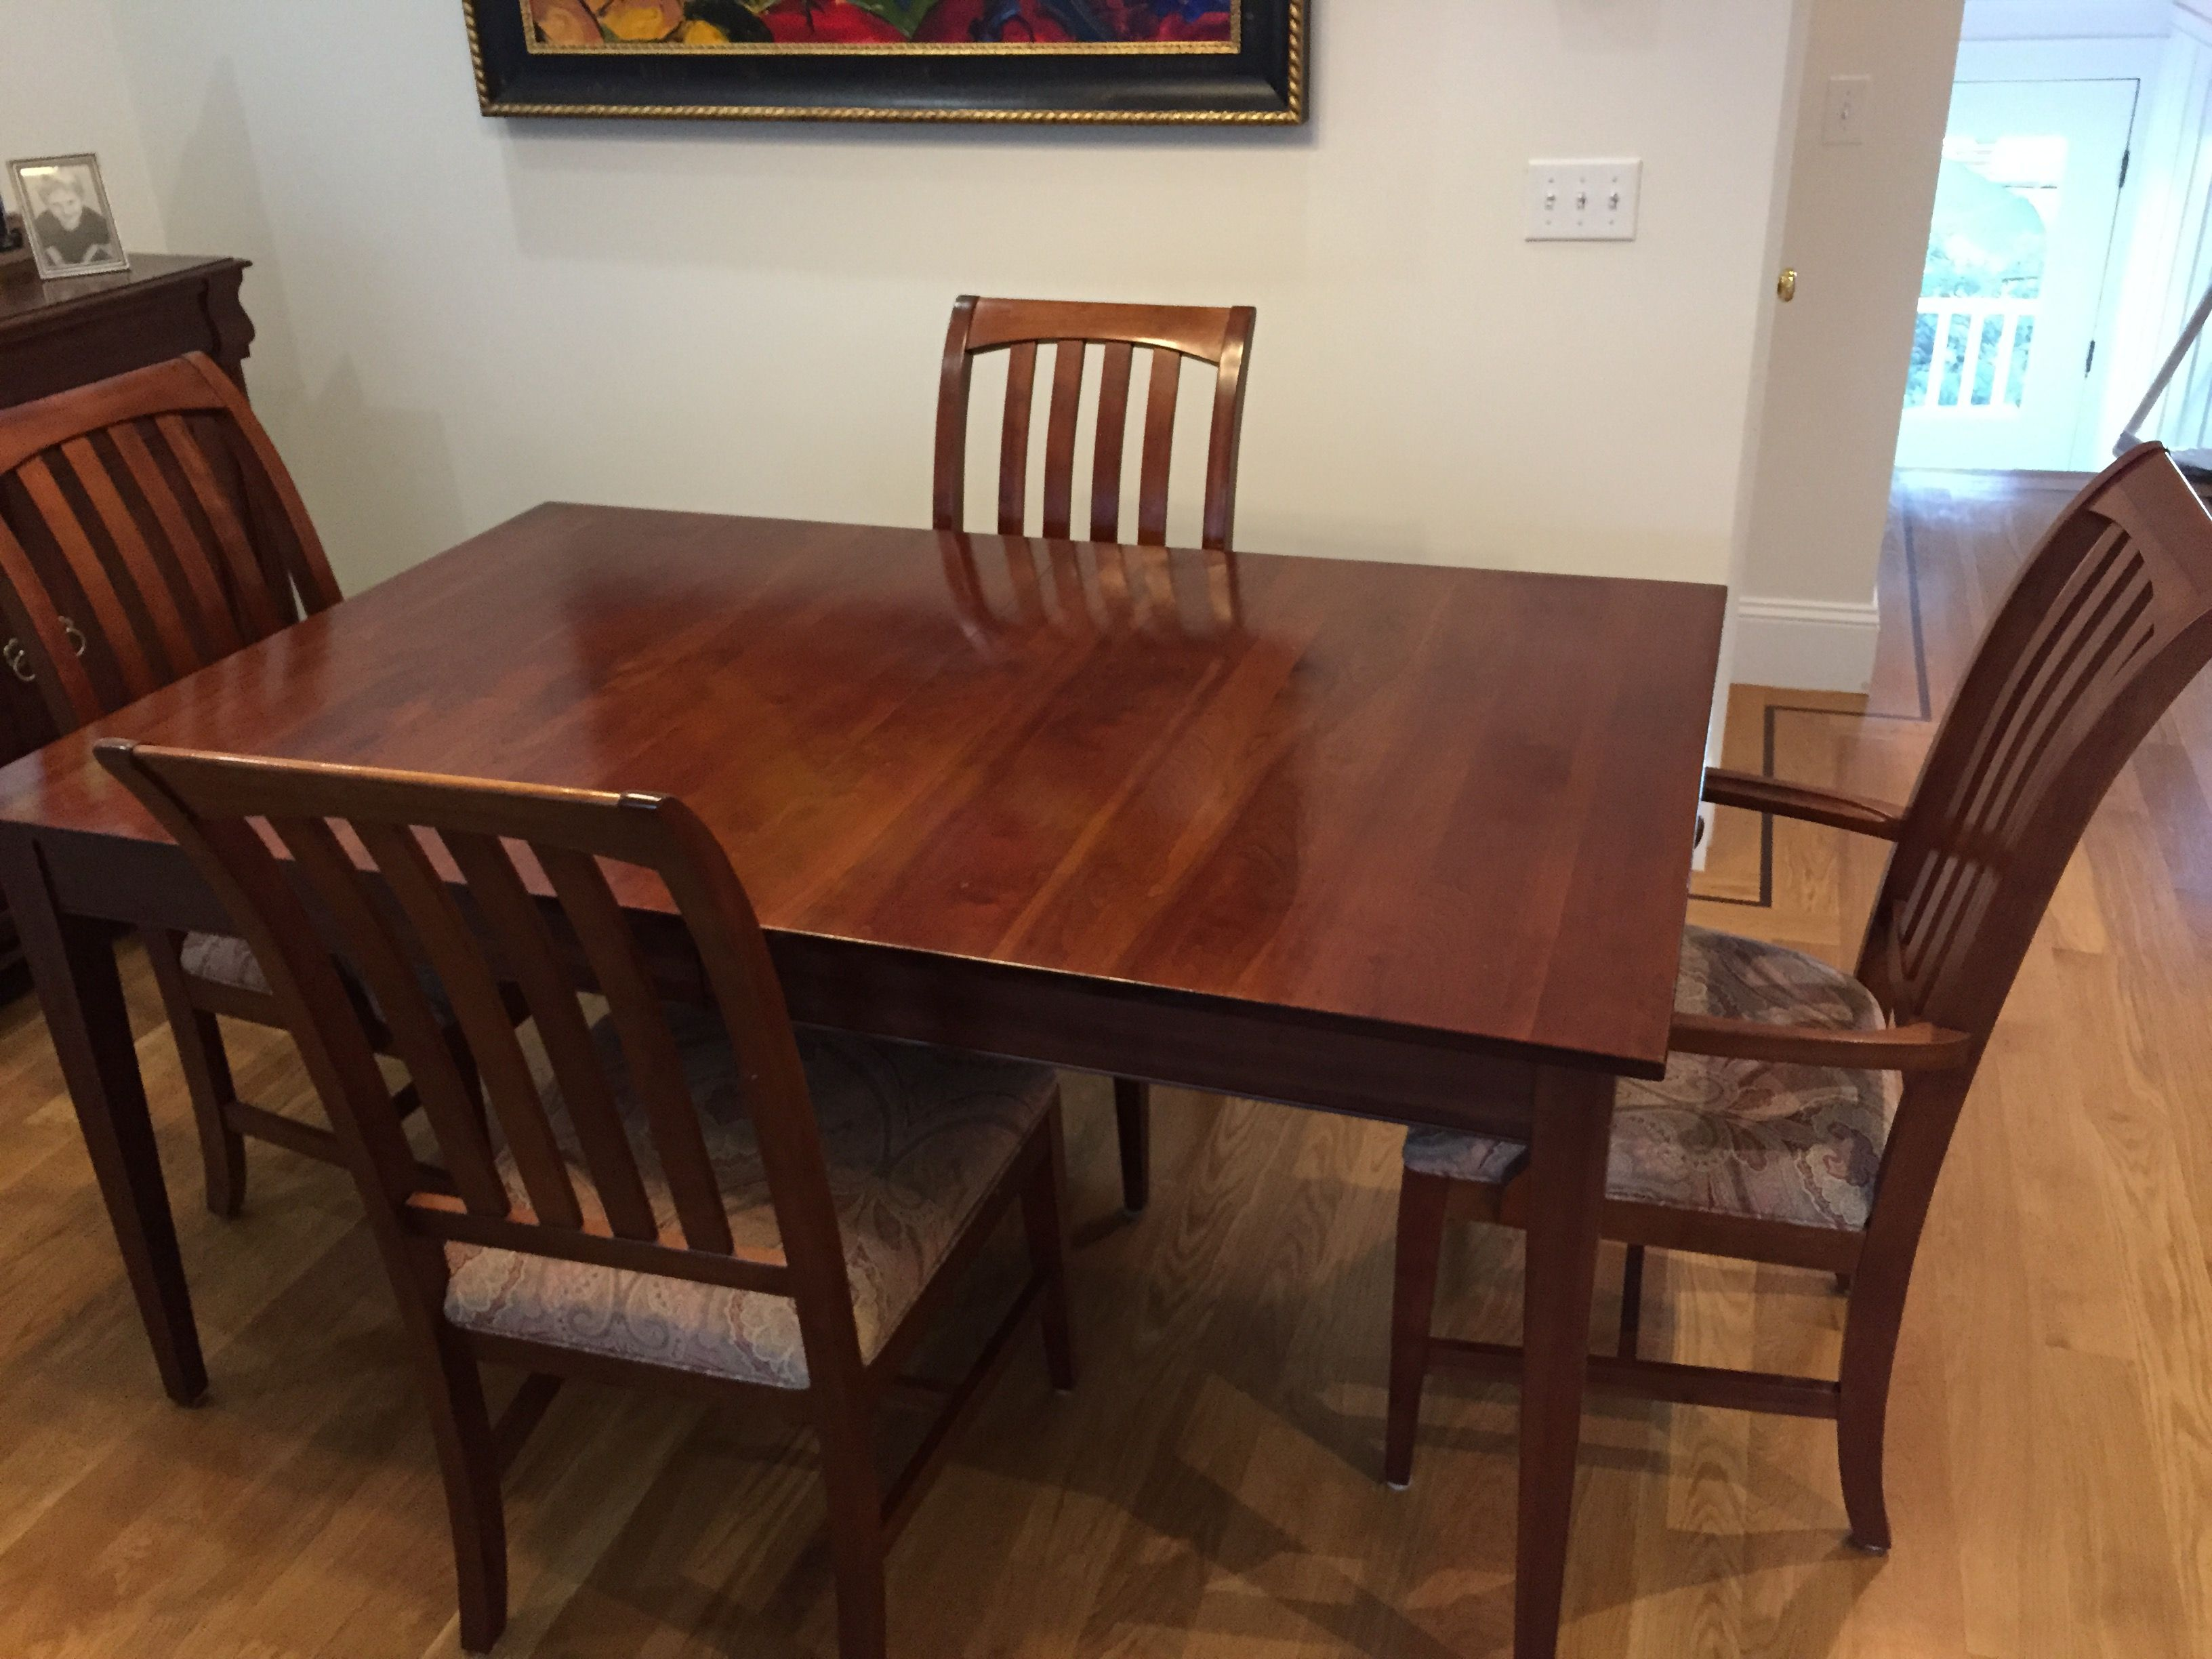 Ethan Allen Dining Room Set Table amp 6 Chairs Chairish : 5bd89e57 c126 444d bb52 6879dbf5a26baspectfitampwidth640ampheight640 from www.chairish.com size 640 x 640 jpeg 38kB